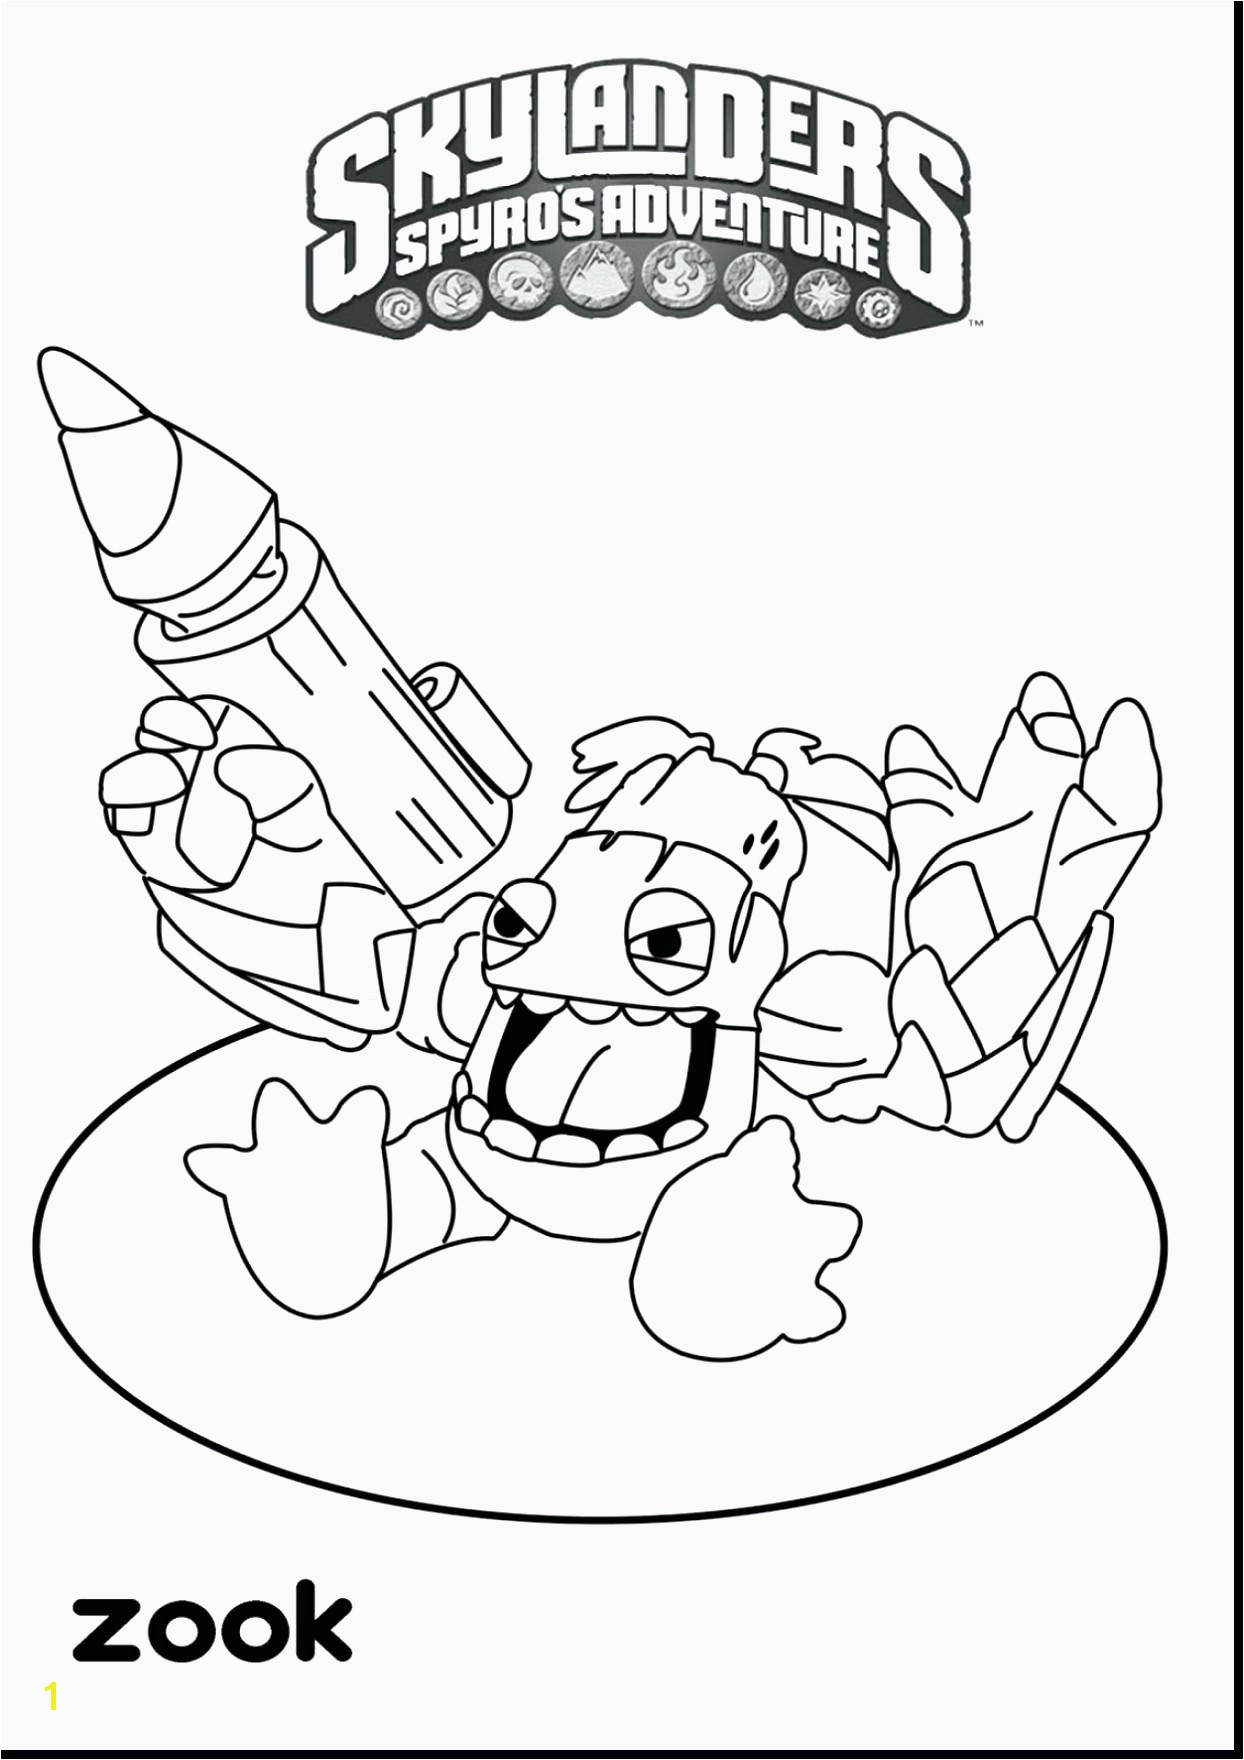 Www Coloring Pages For Kids Coloring Pages Printables Unique Coloring Printables 0d – Fun Time